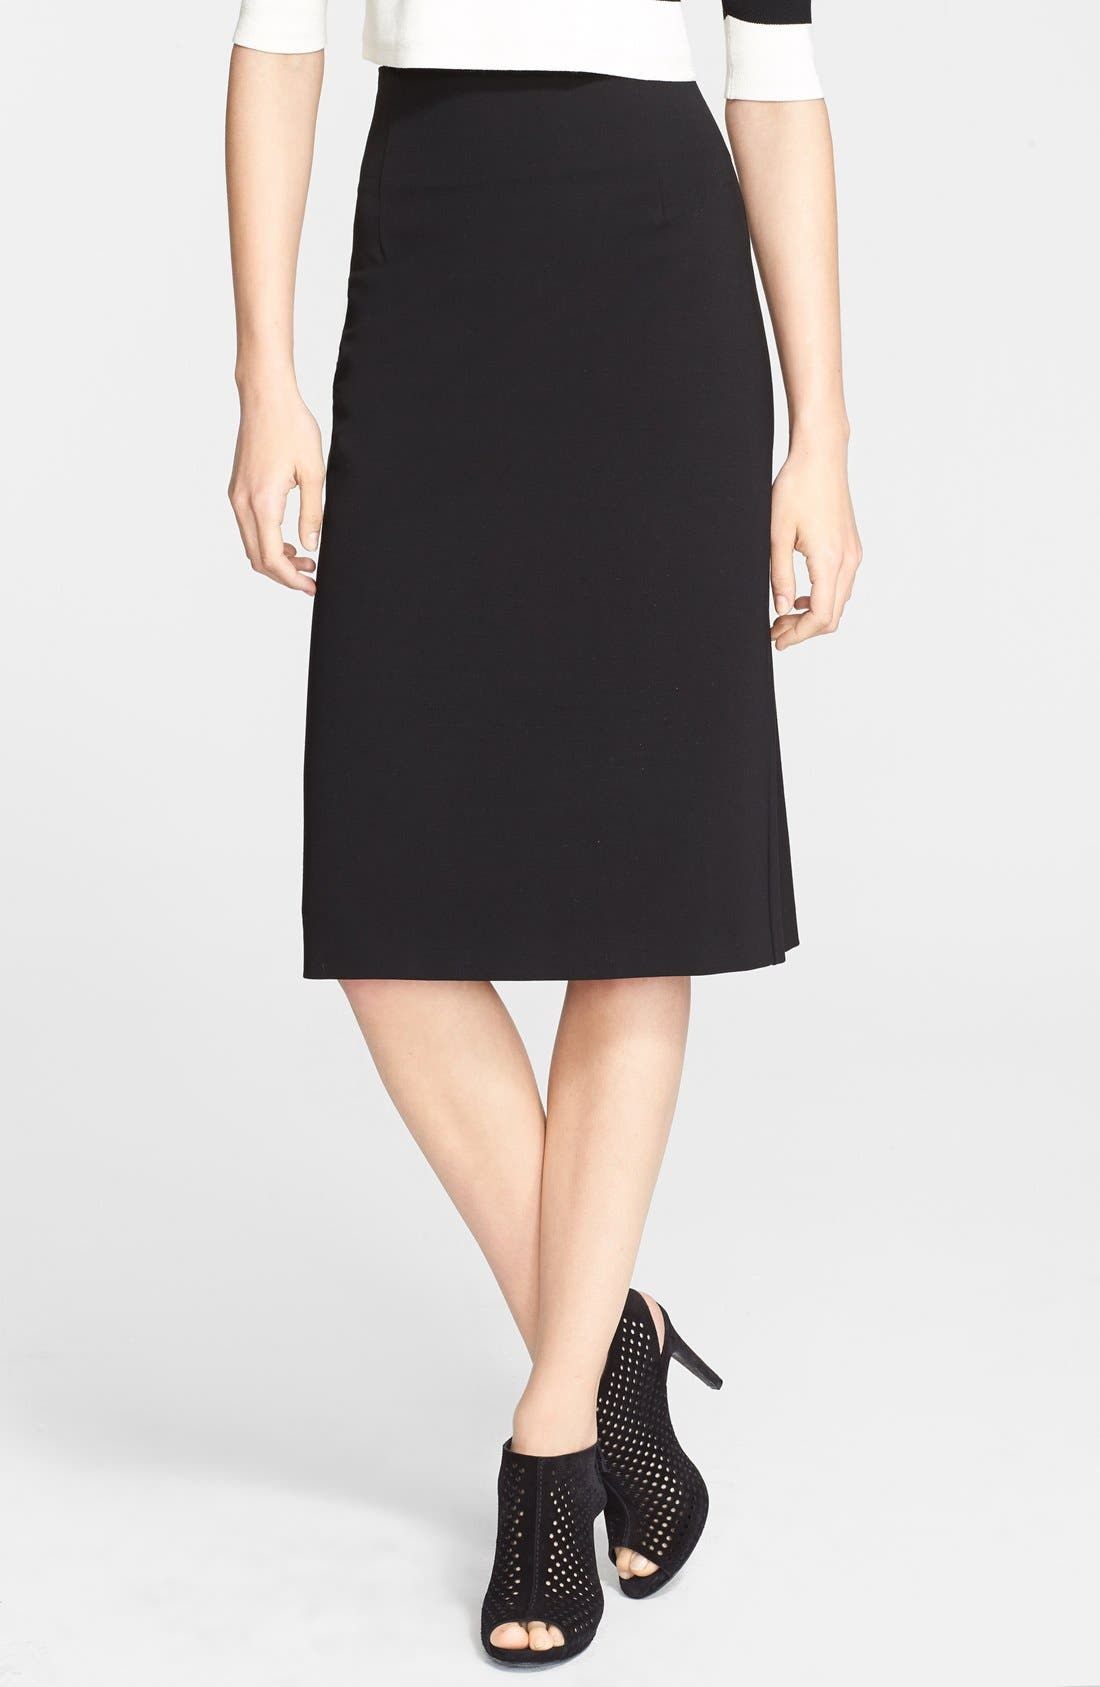 Alternate Image 1 Selected - Theory 'Austell' Pencil Skirt